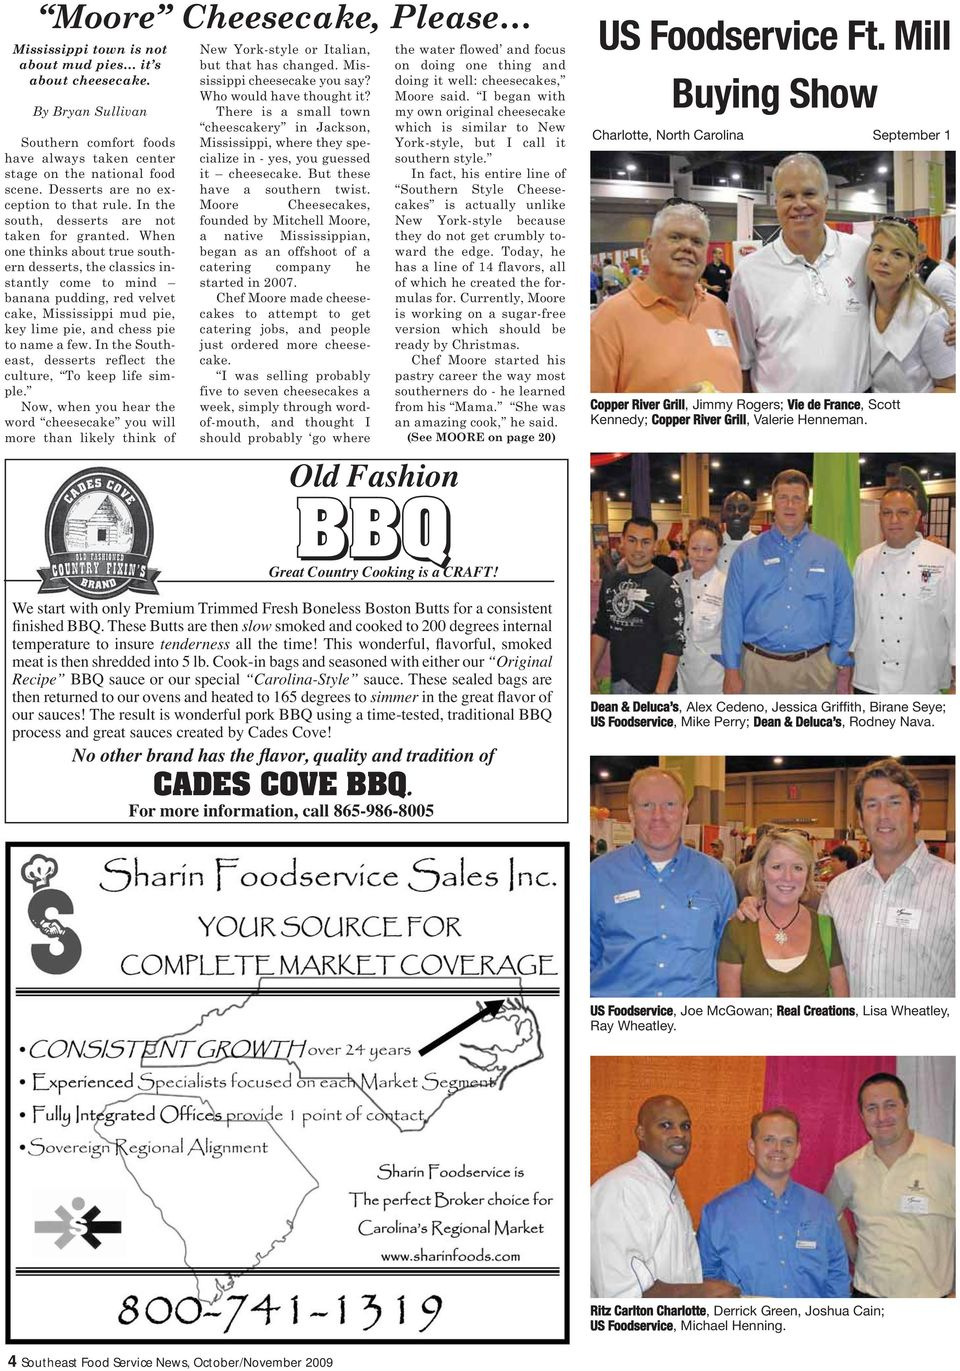 Seafare Restaurant Puts Traditional Spin on Seafood Buffet - PDF